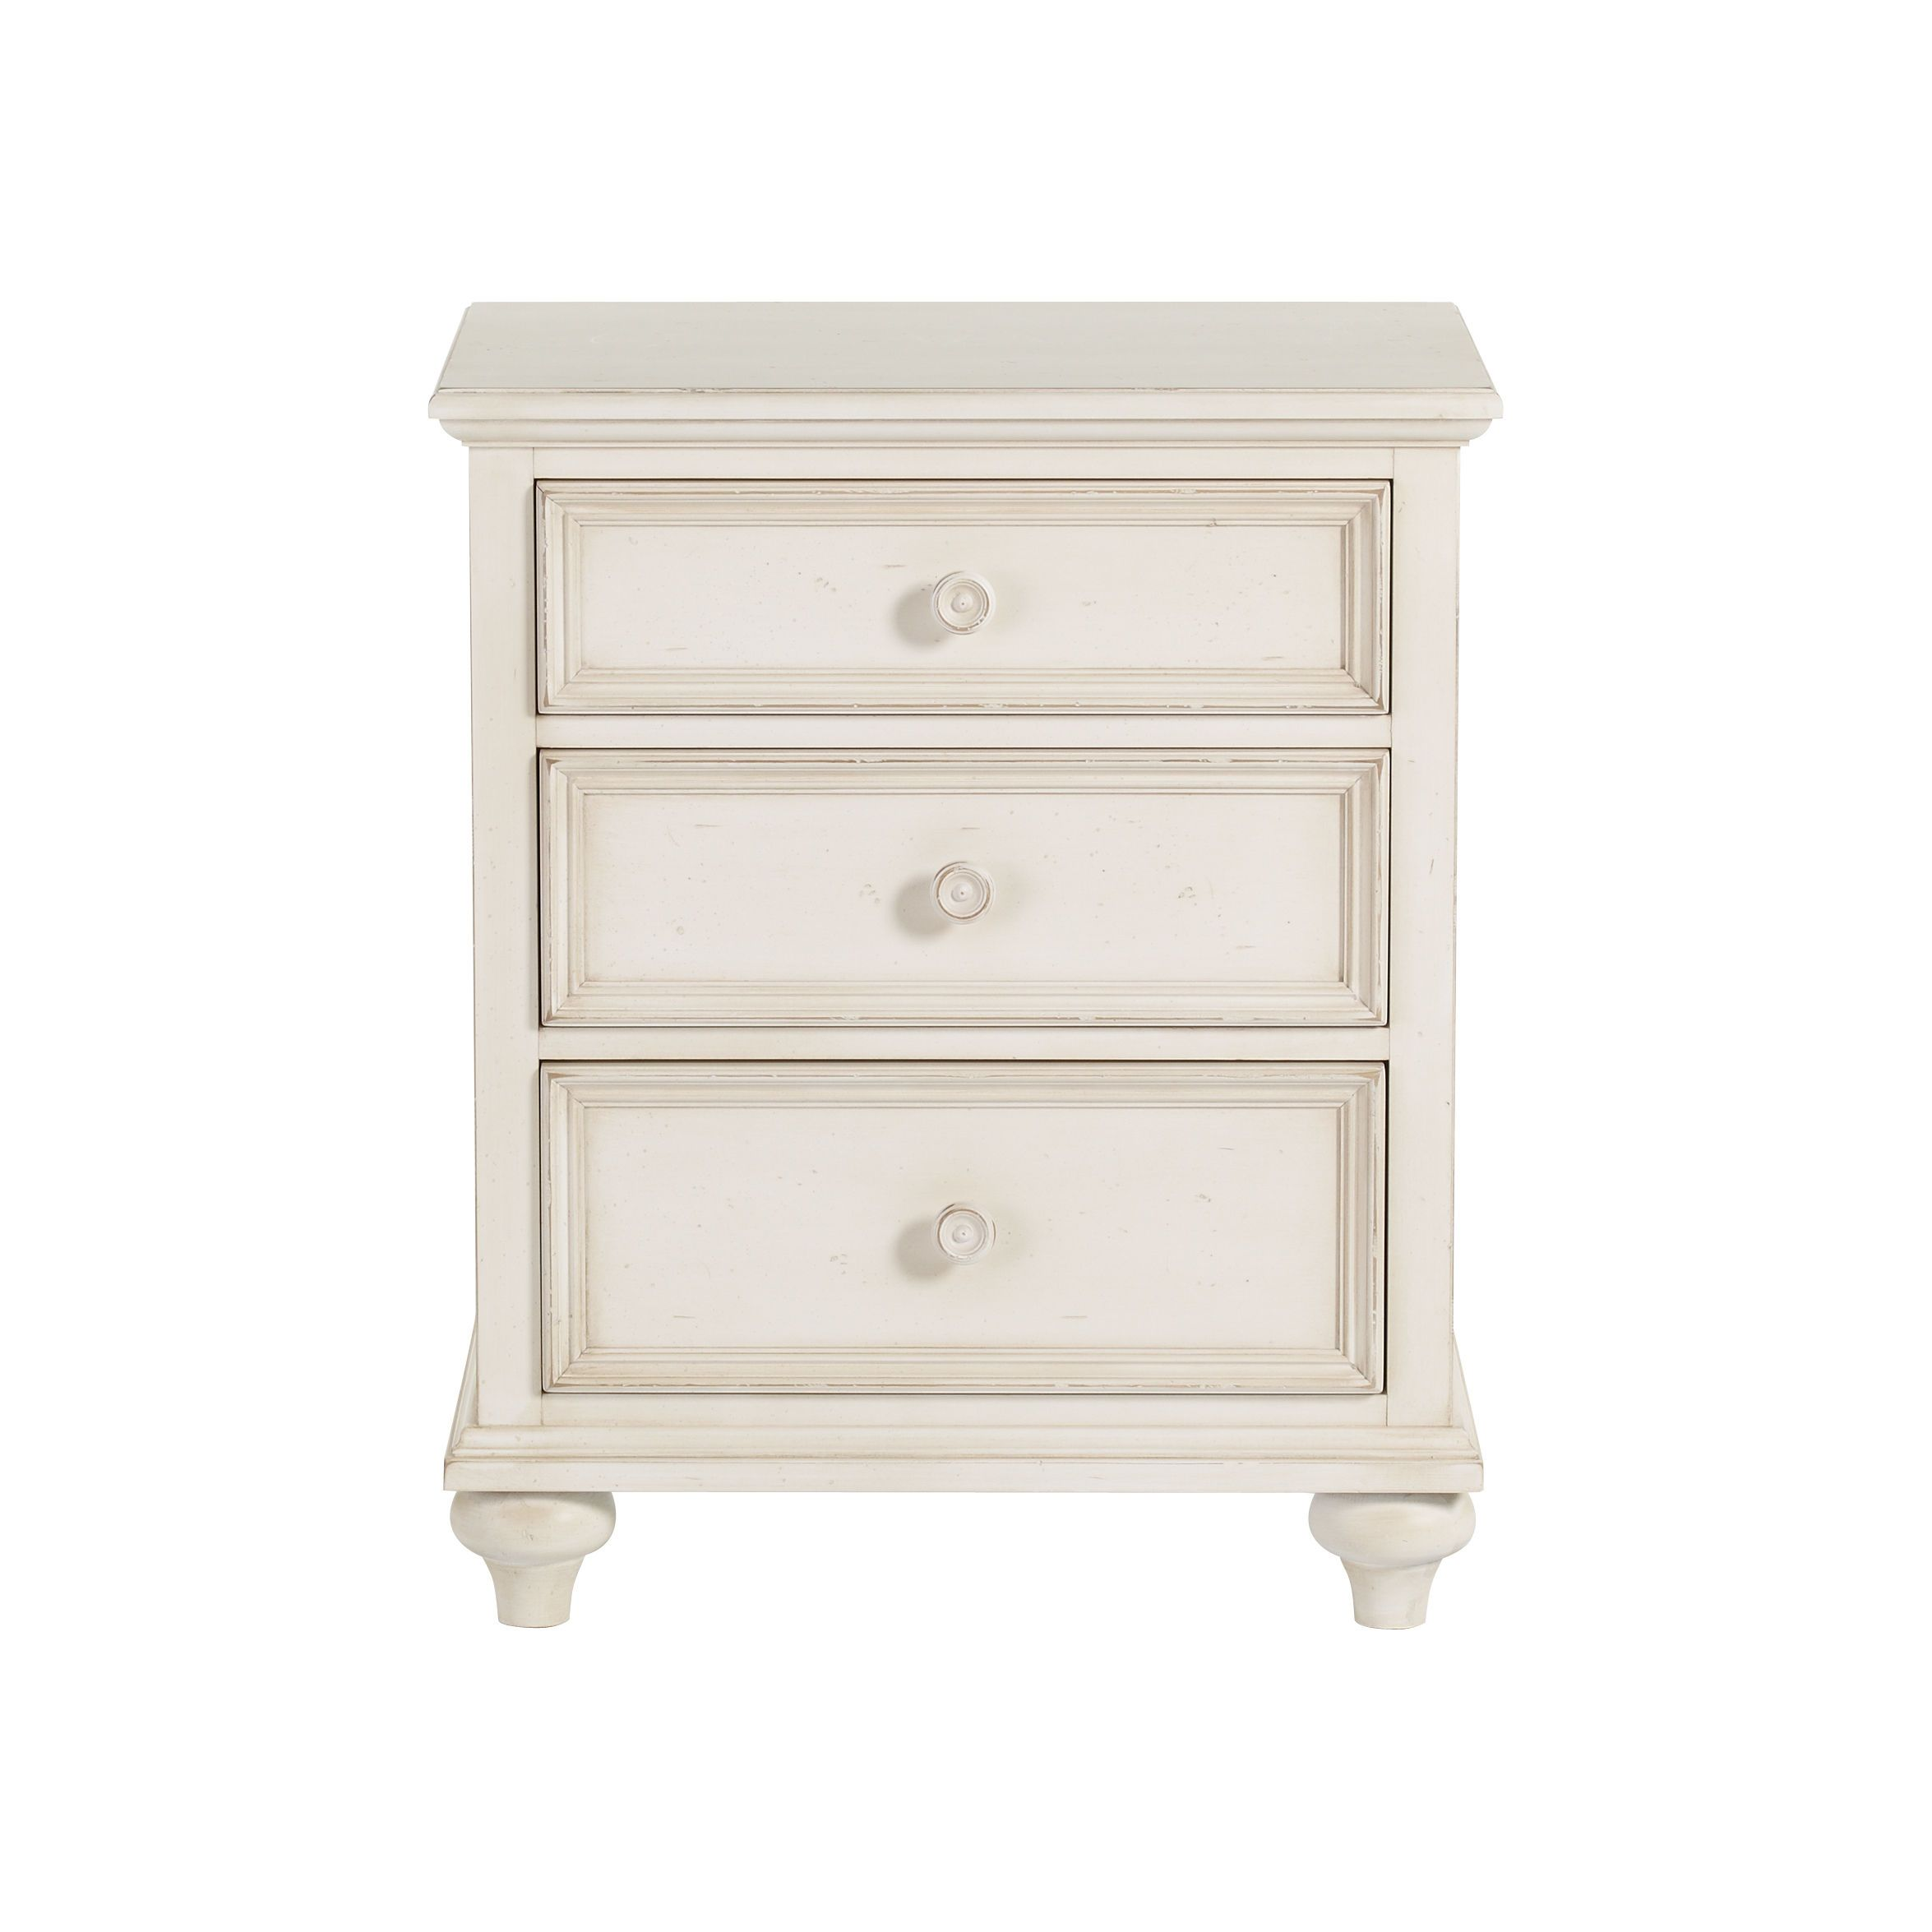 Lucy Night Table Ethan Allen Us Wood Night Table Night Table